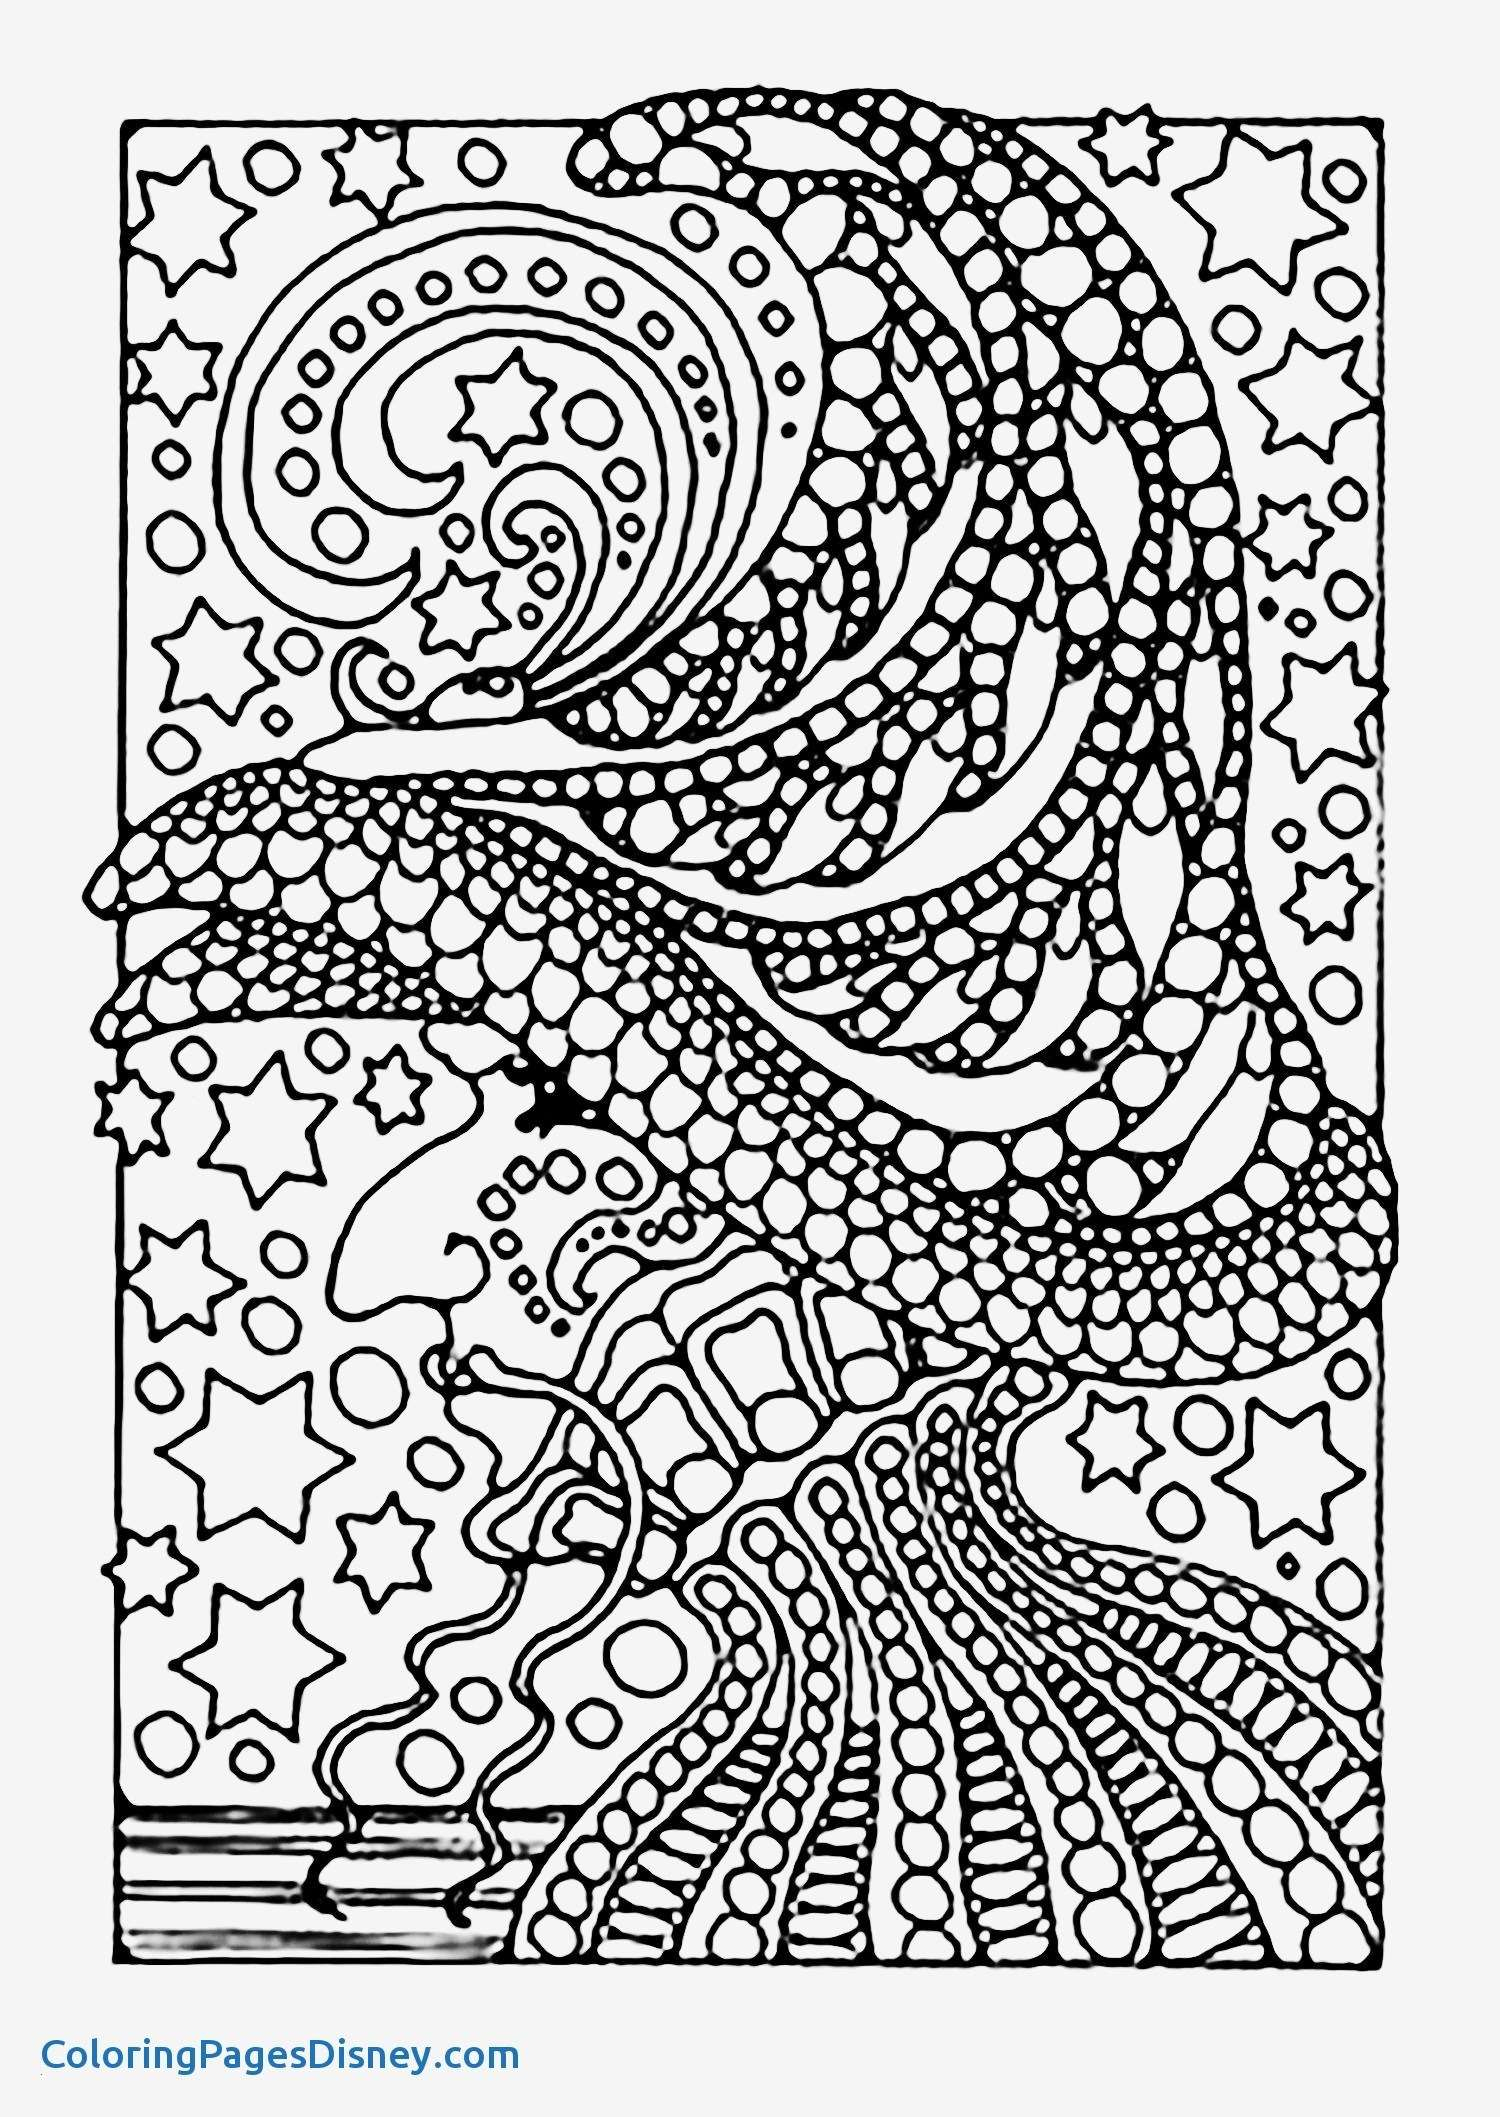 Crayon Coloring Pages  Printable 18a - Free For Children